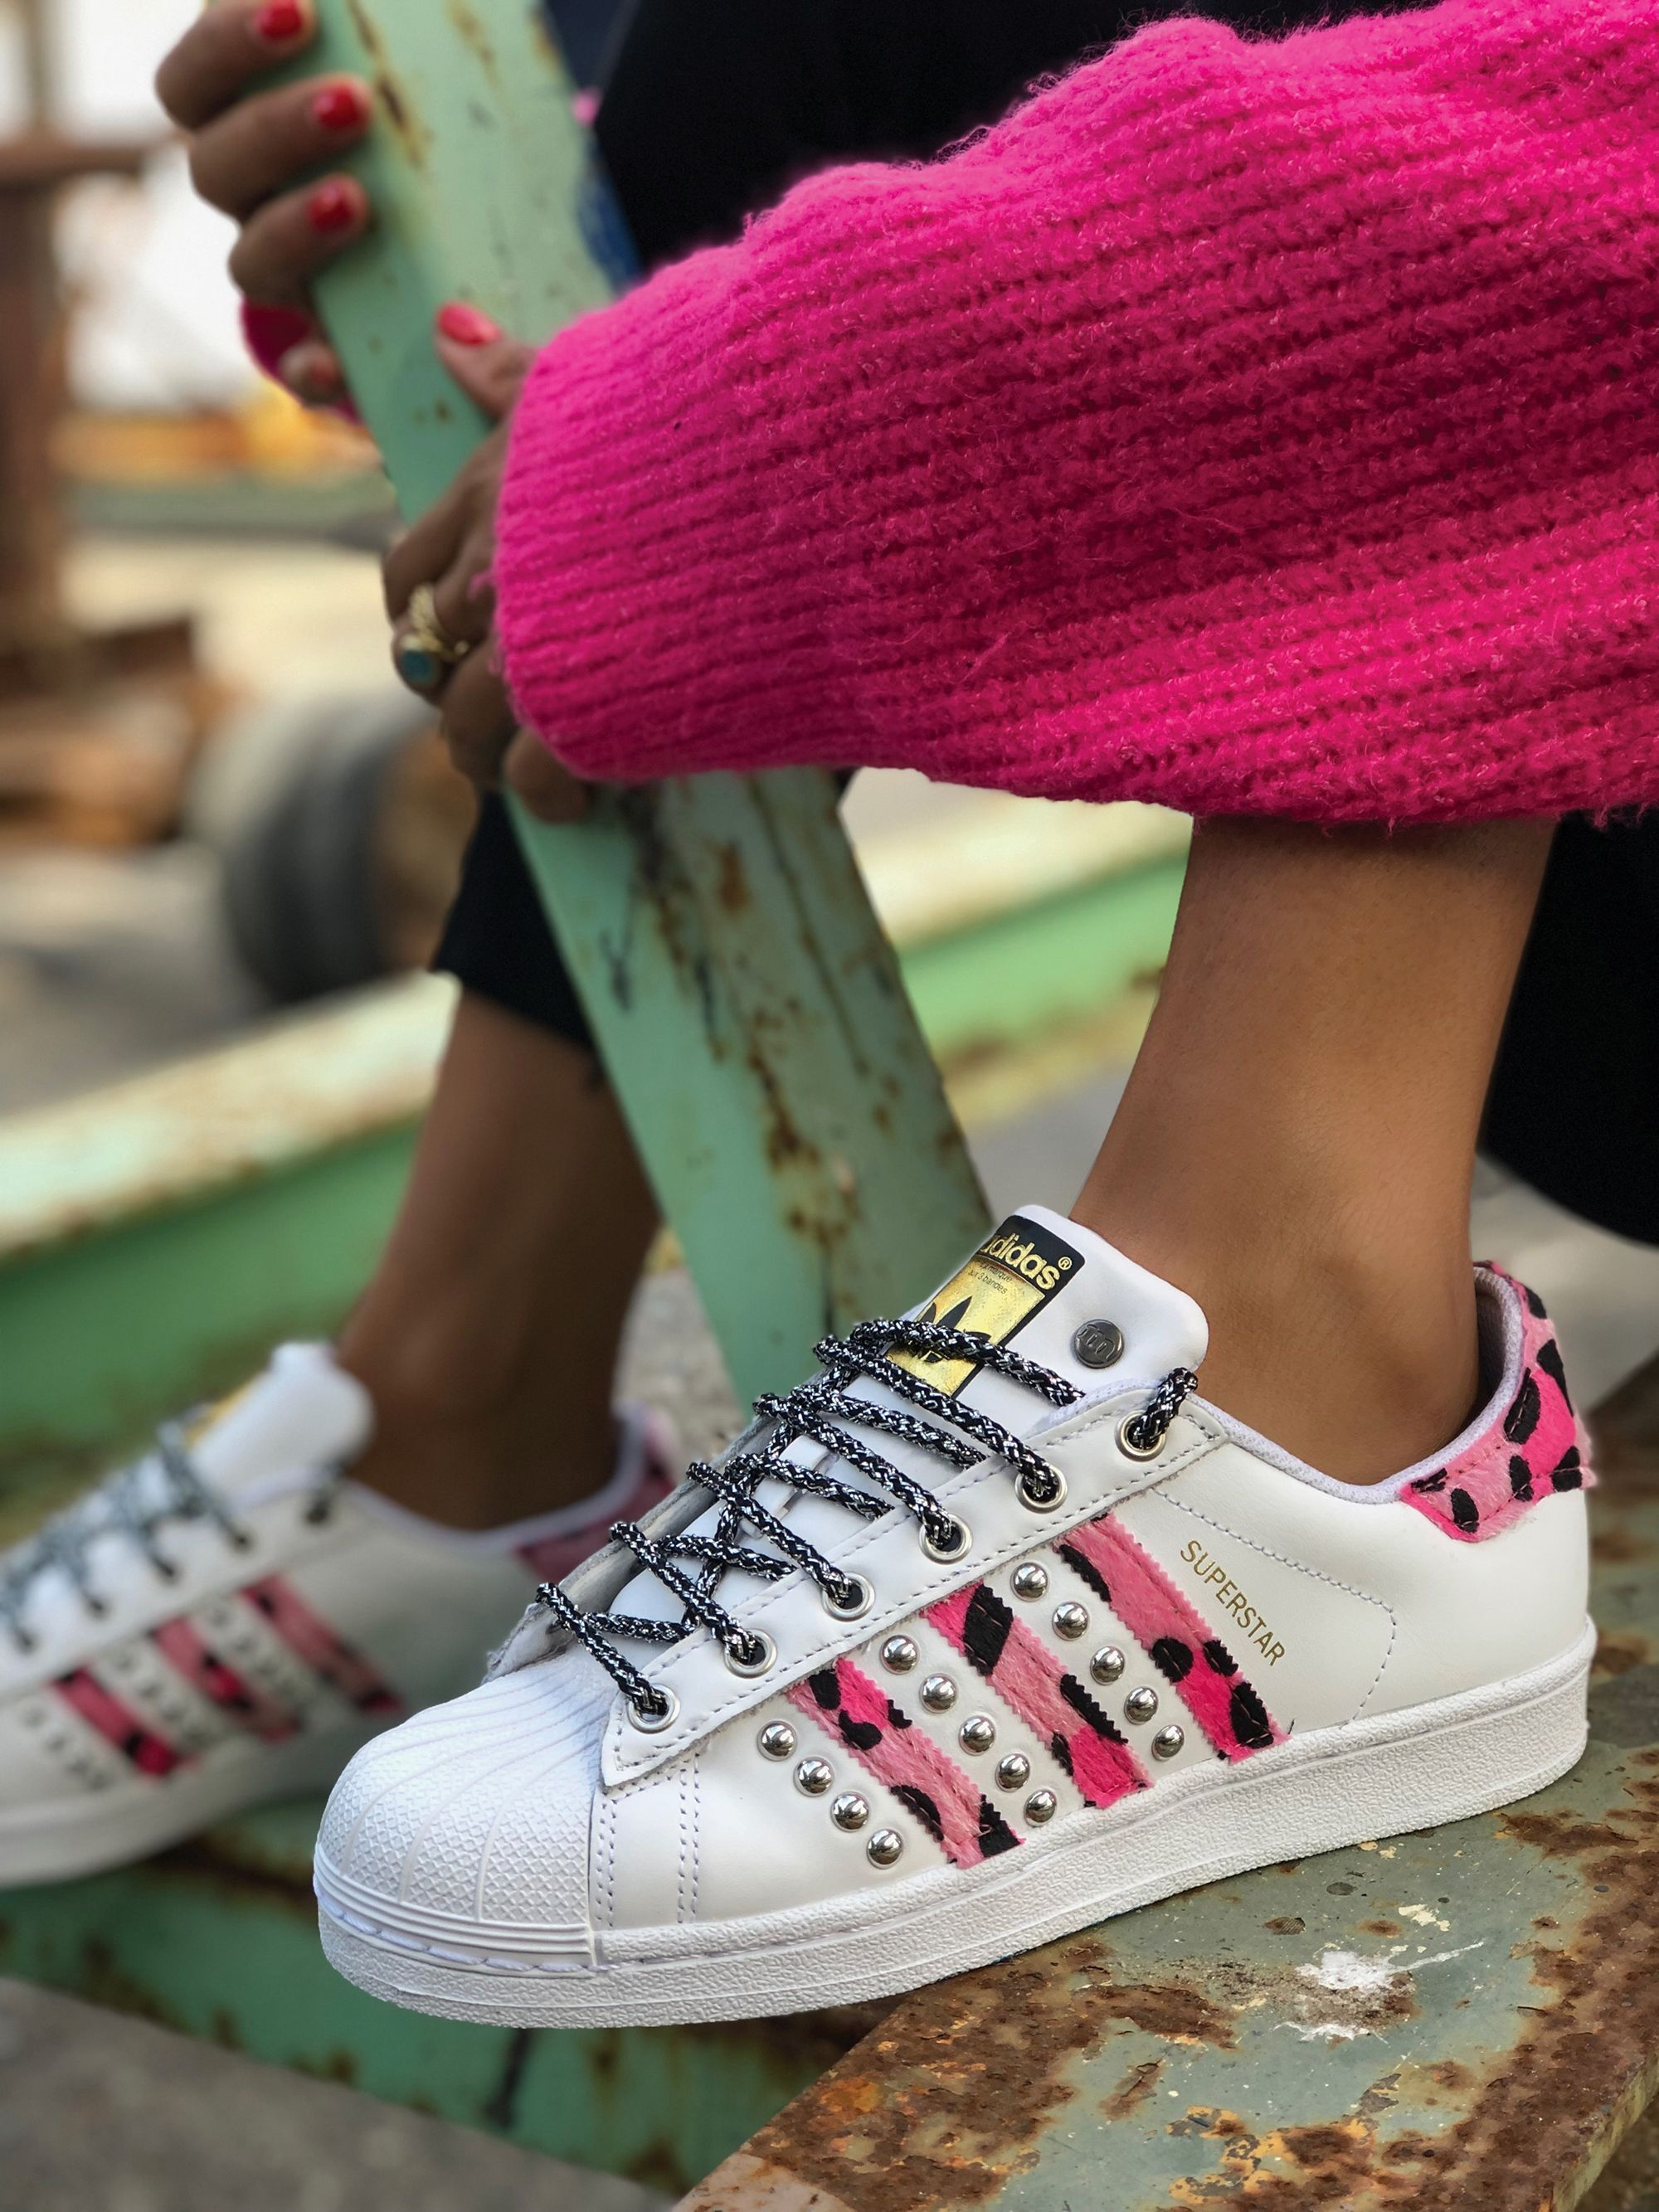 Adidas Stan Smith TOTAL MIMETIC Custom by Muffin #muffinshop